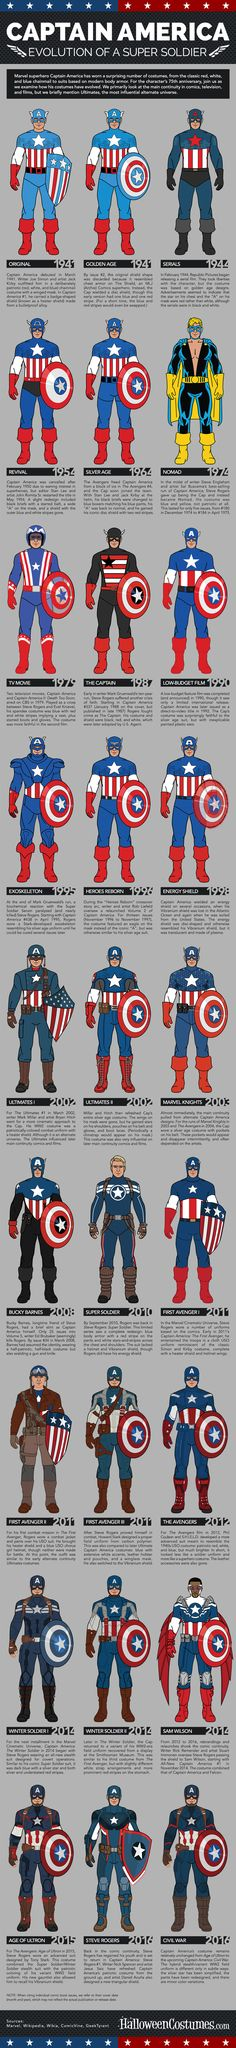 Captain America: Marvel's Super Soldier Marvel Dc Comics, Heros Comics, Bd Comics, Marvel Art, Marvel Heroes, Marvel Movies, Comic Book Characters, Comic Character, Comic Books Art